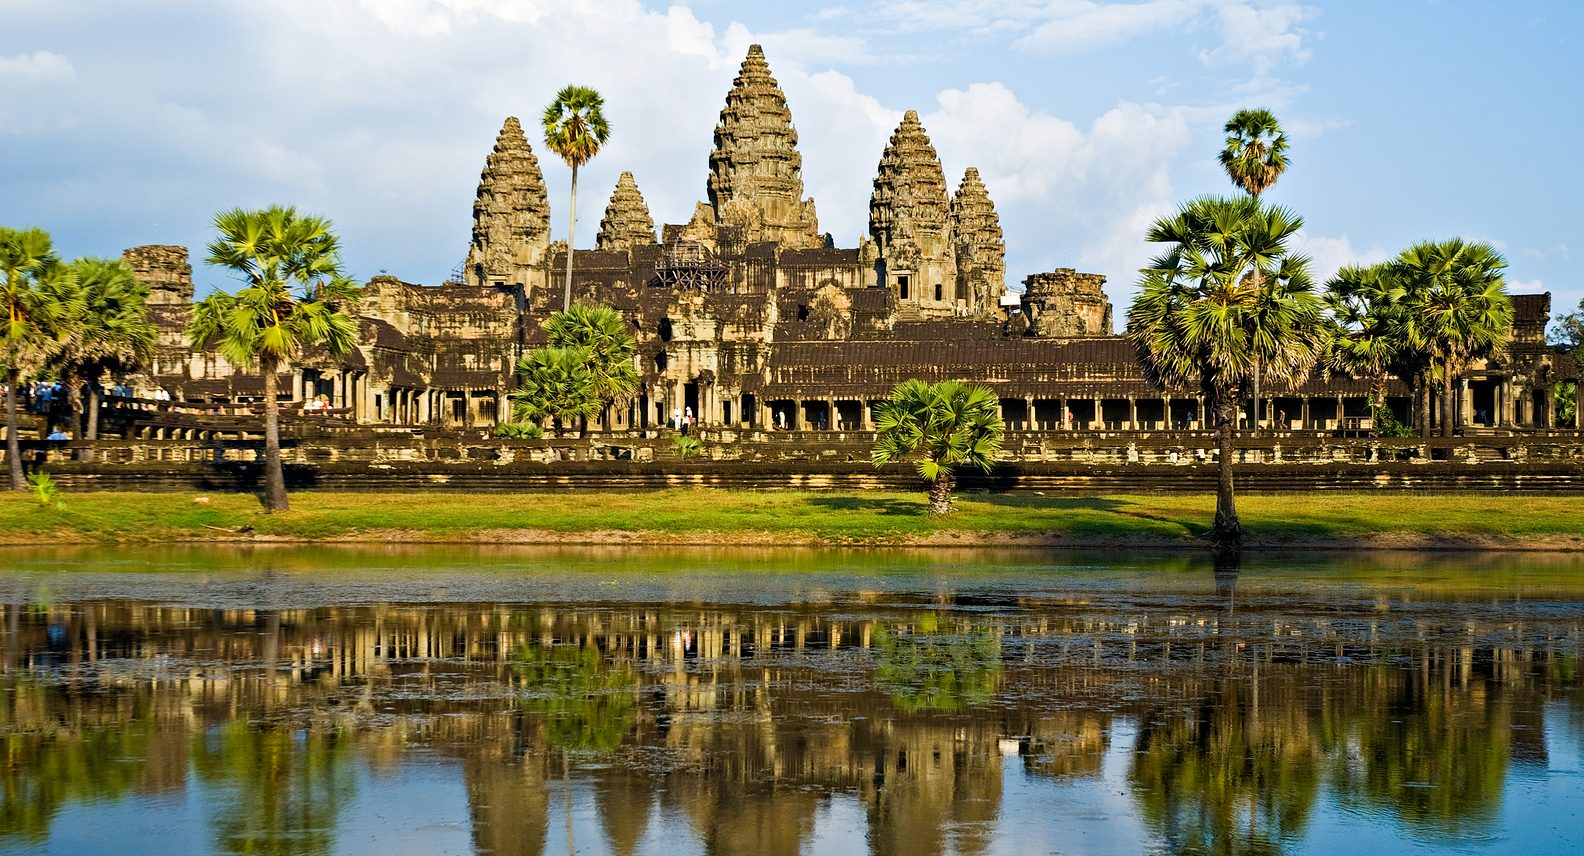 Exploring Angkor Wat, Angkor Wat, Travelling to Cambodia, travelling to Siem Reap, Temples in Angkor Wat, Which temples to visit in Angkor Wat, When to go to Angkor Wat, Where to stay in Siem Reap